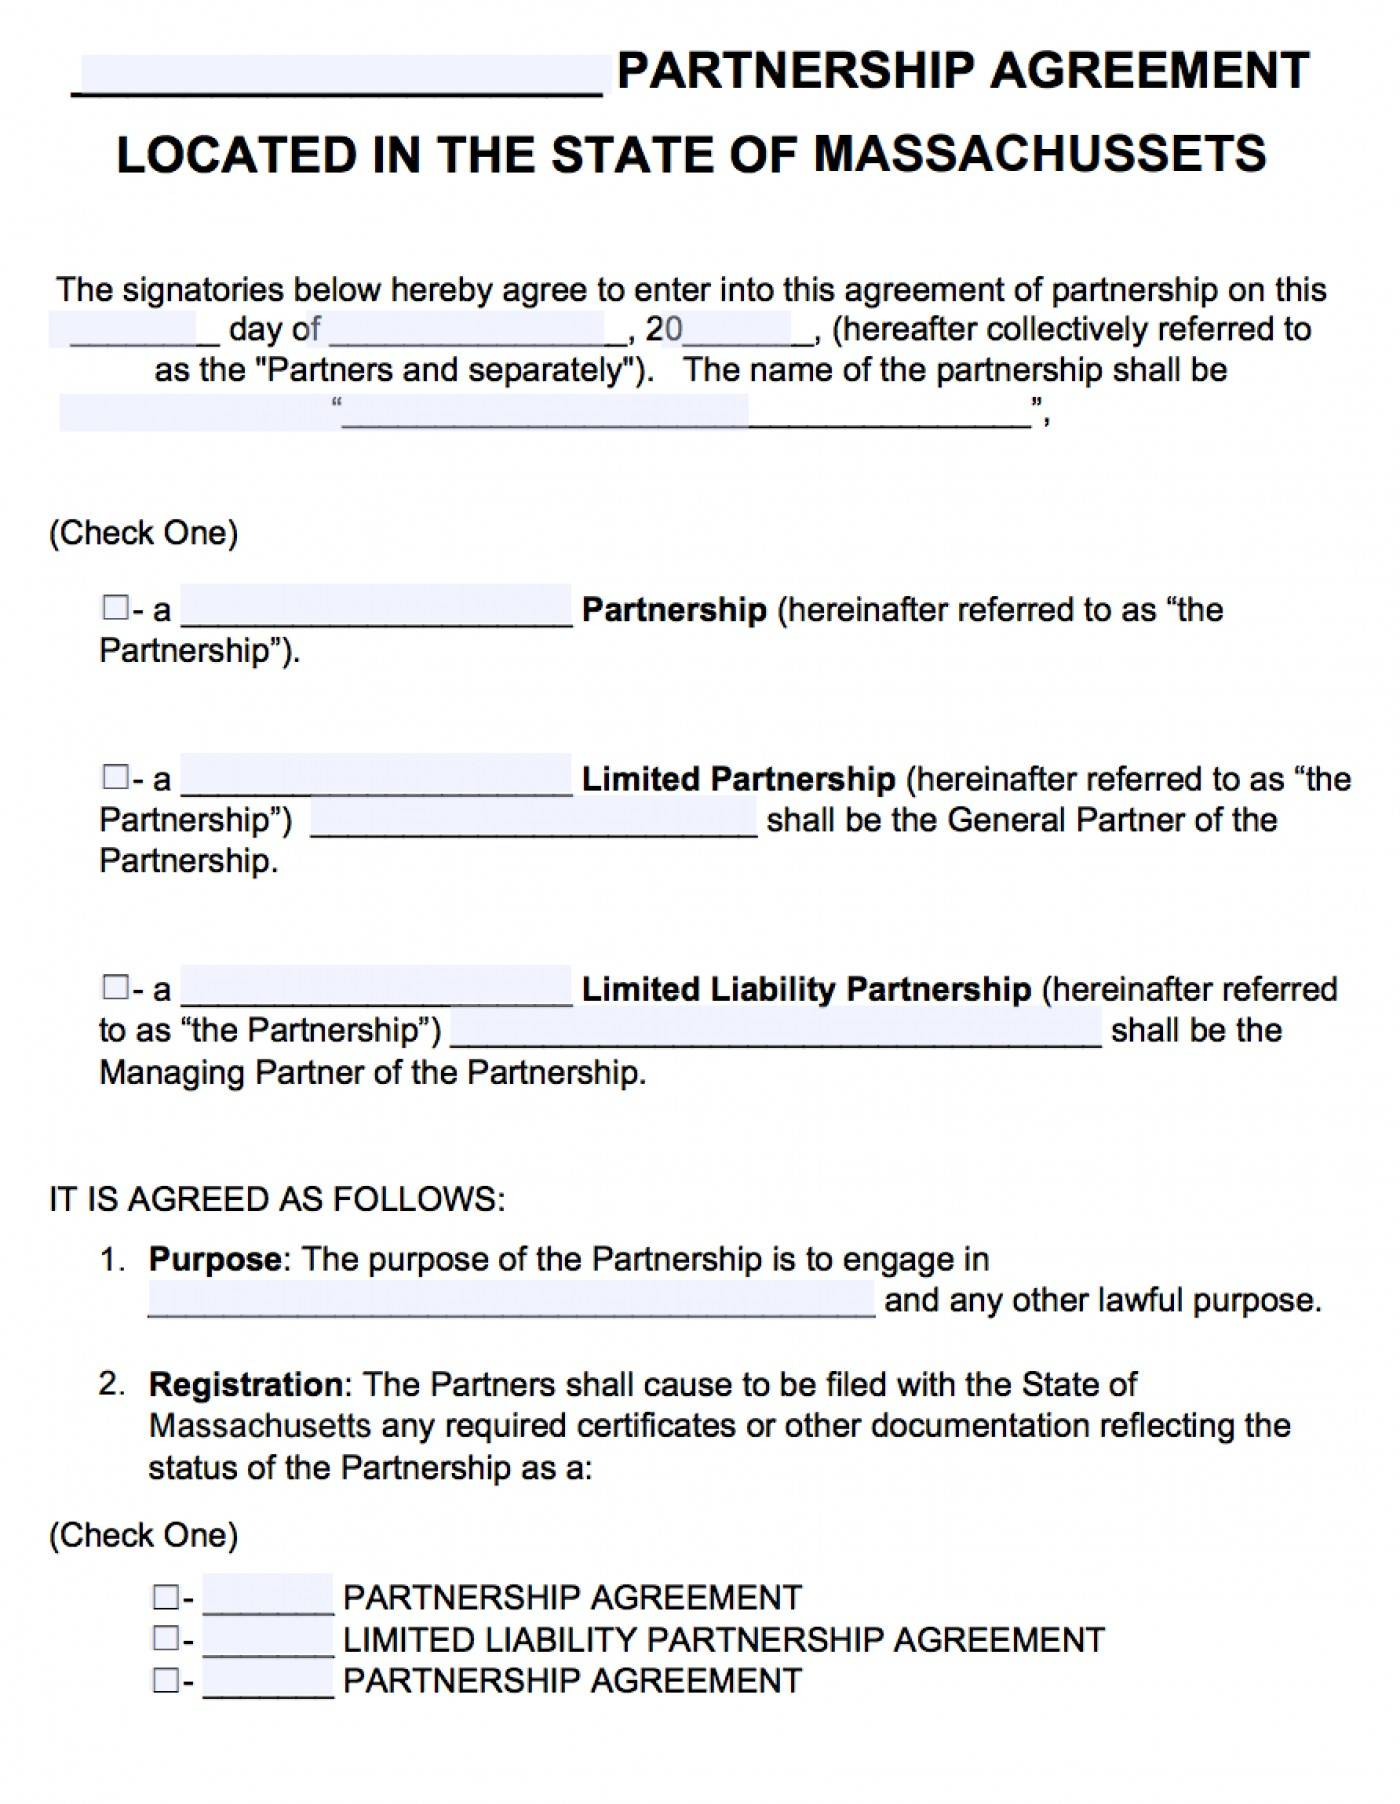 Limited Liability Partnership Agreement Template Ontario